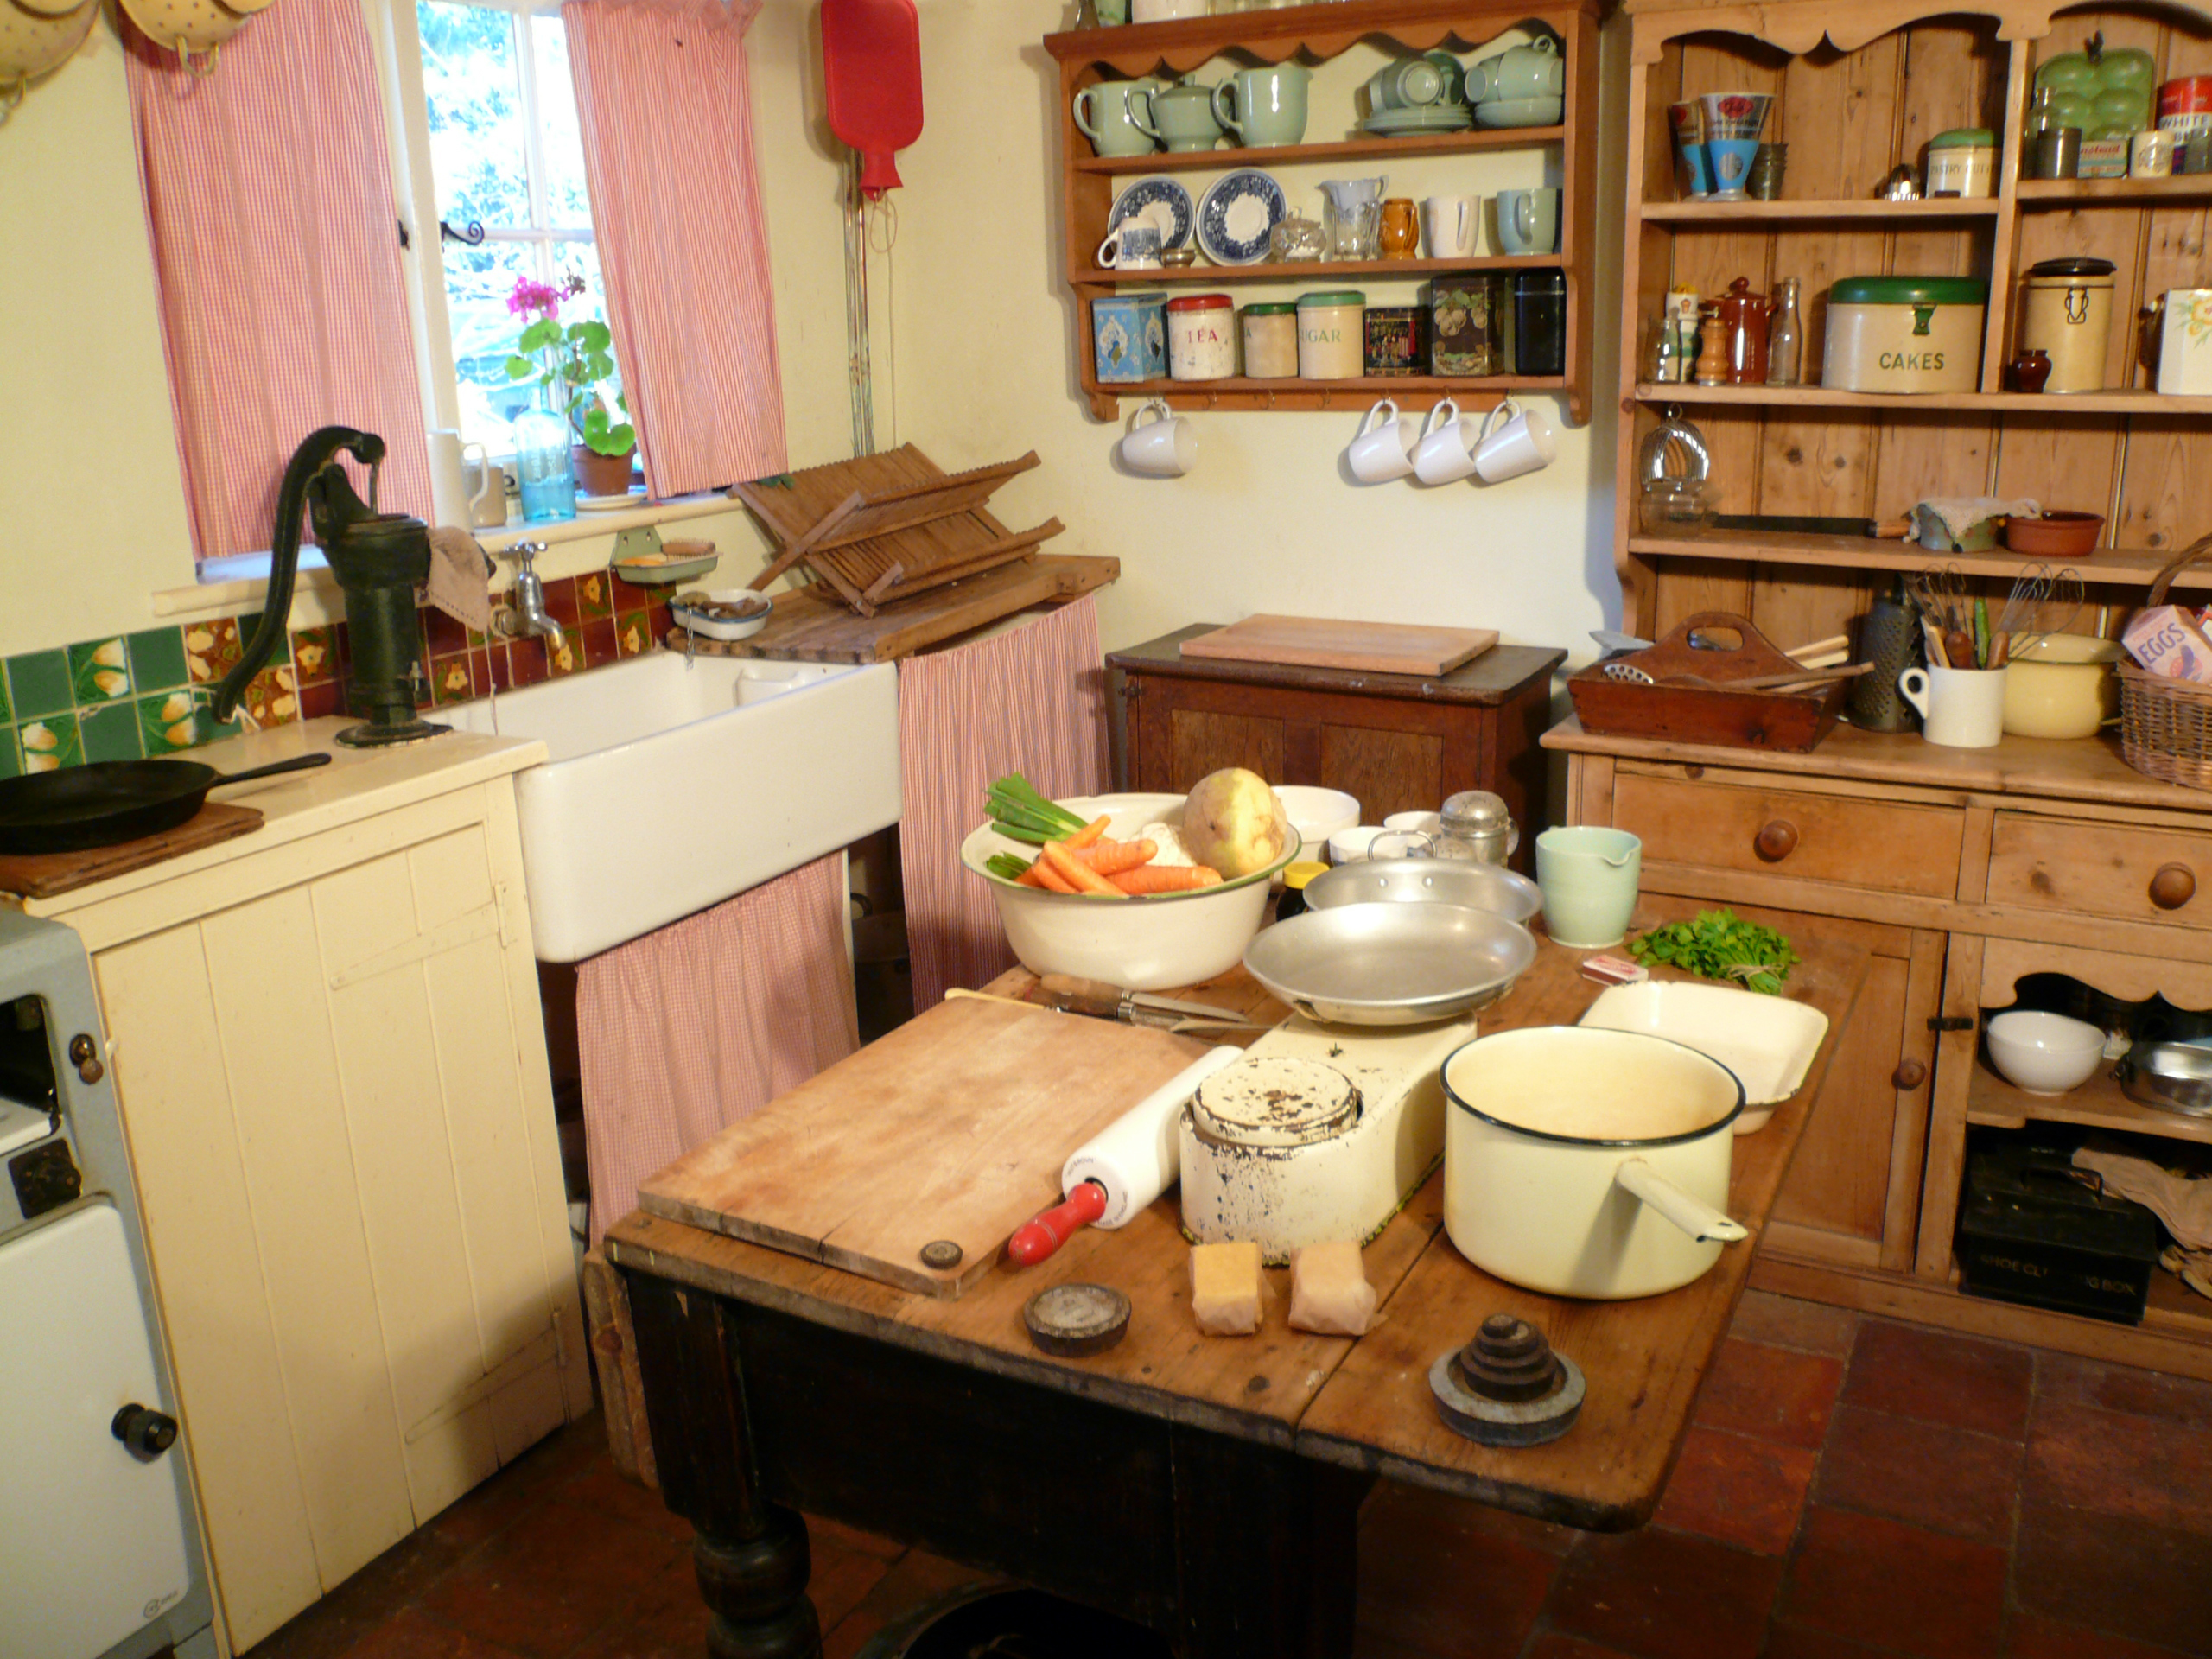 1940s kitchen NEN Gallery : p1060639 from gallery.nen.gov.uk size 2560 x 1920 jpeg 2975kB